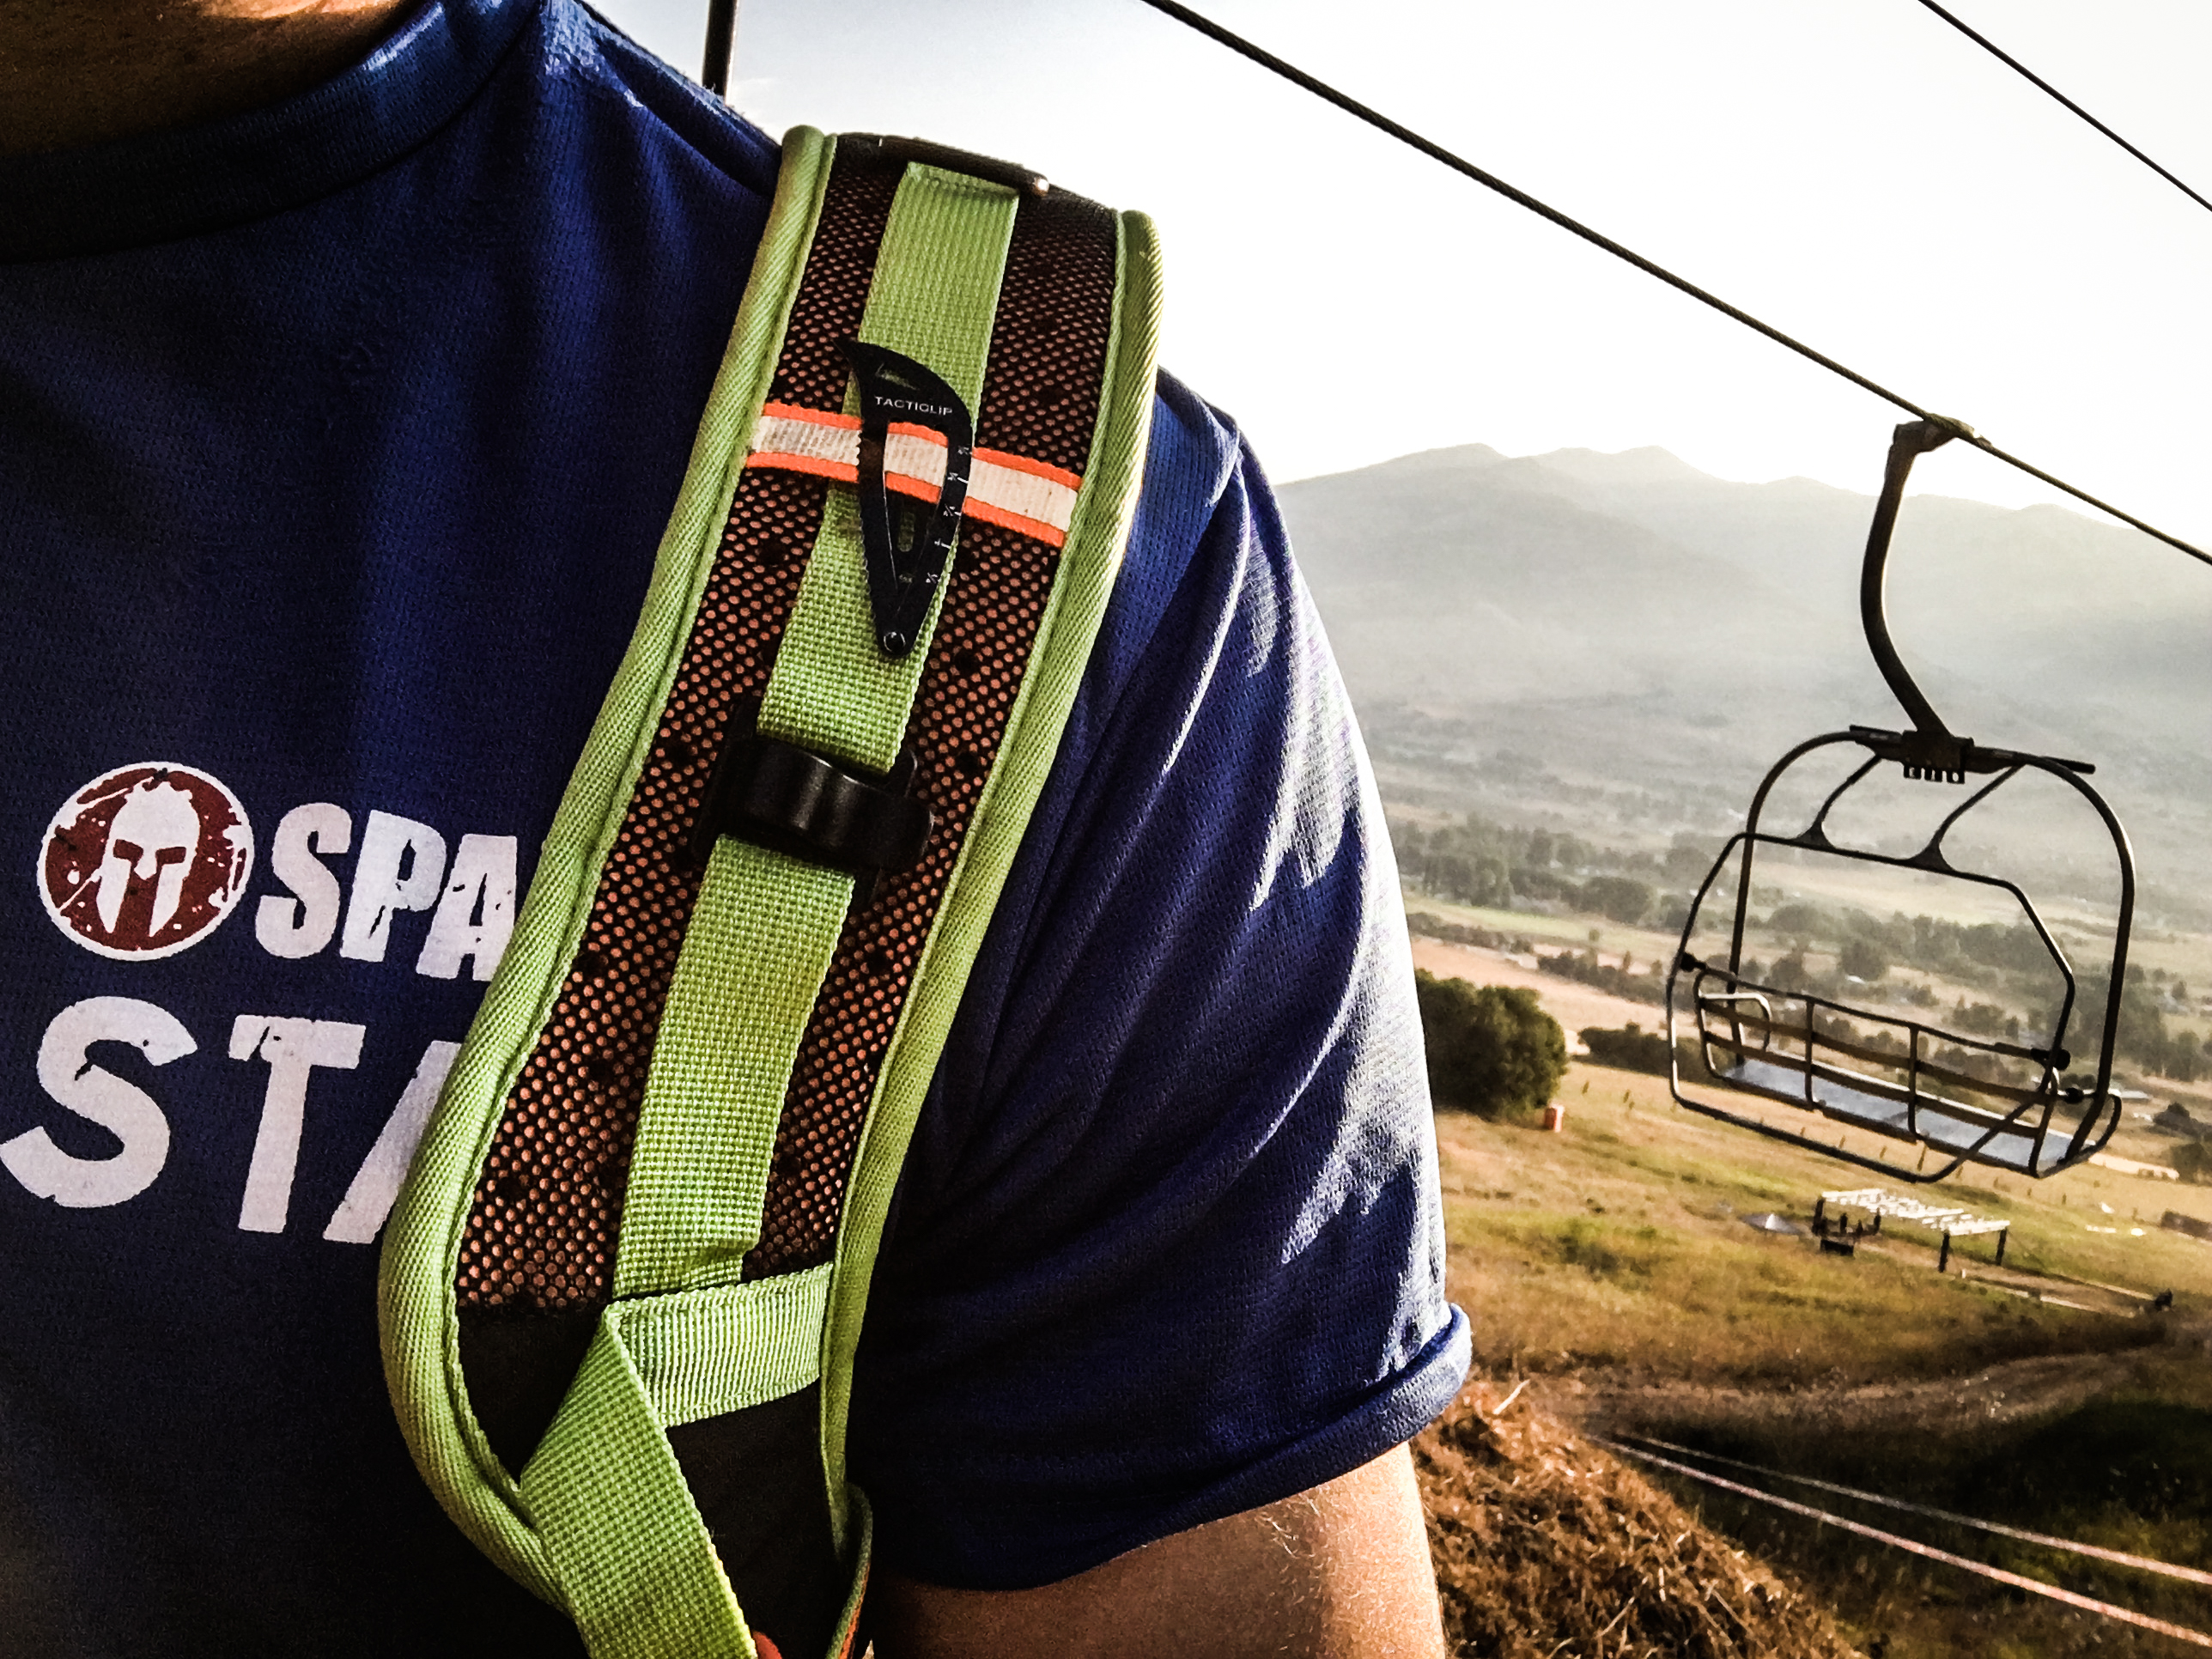 tactical hair clip on backpack during spartan warrior adventure race